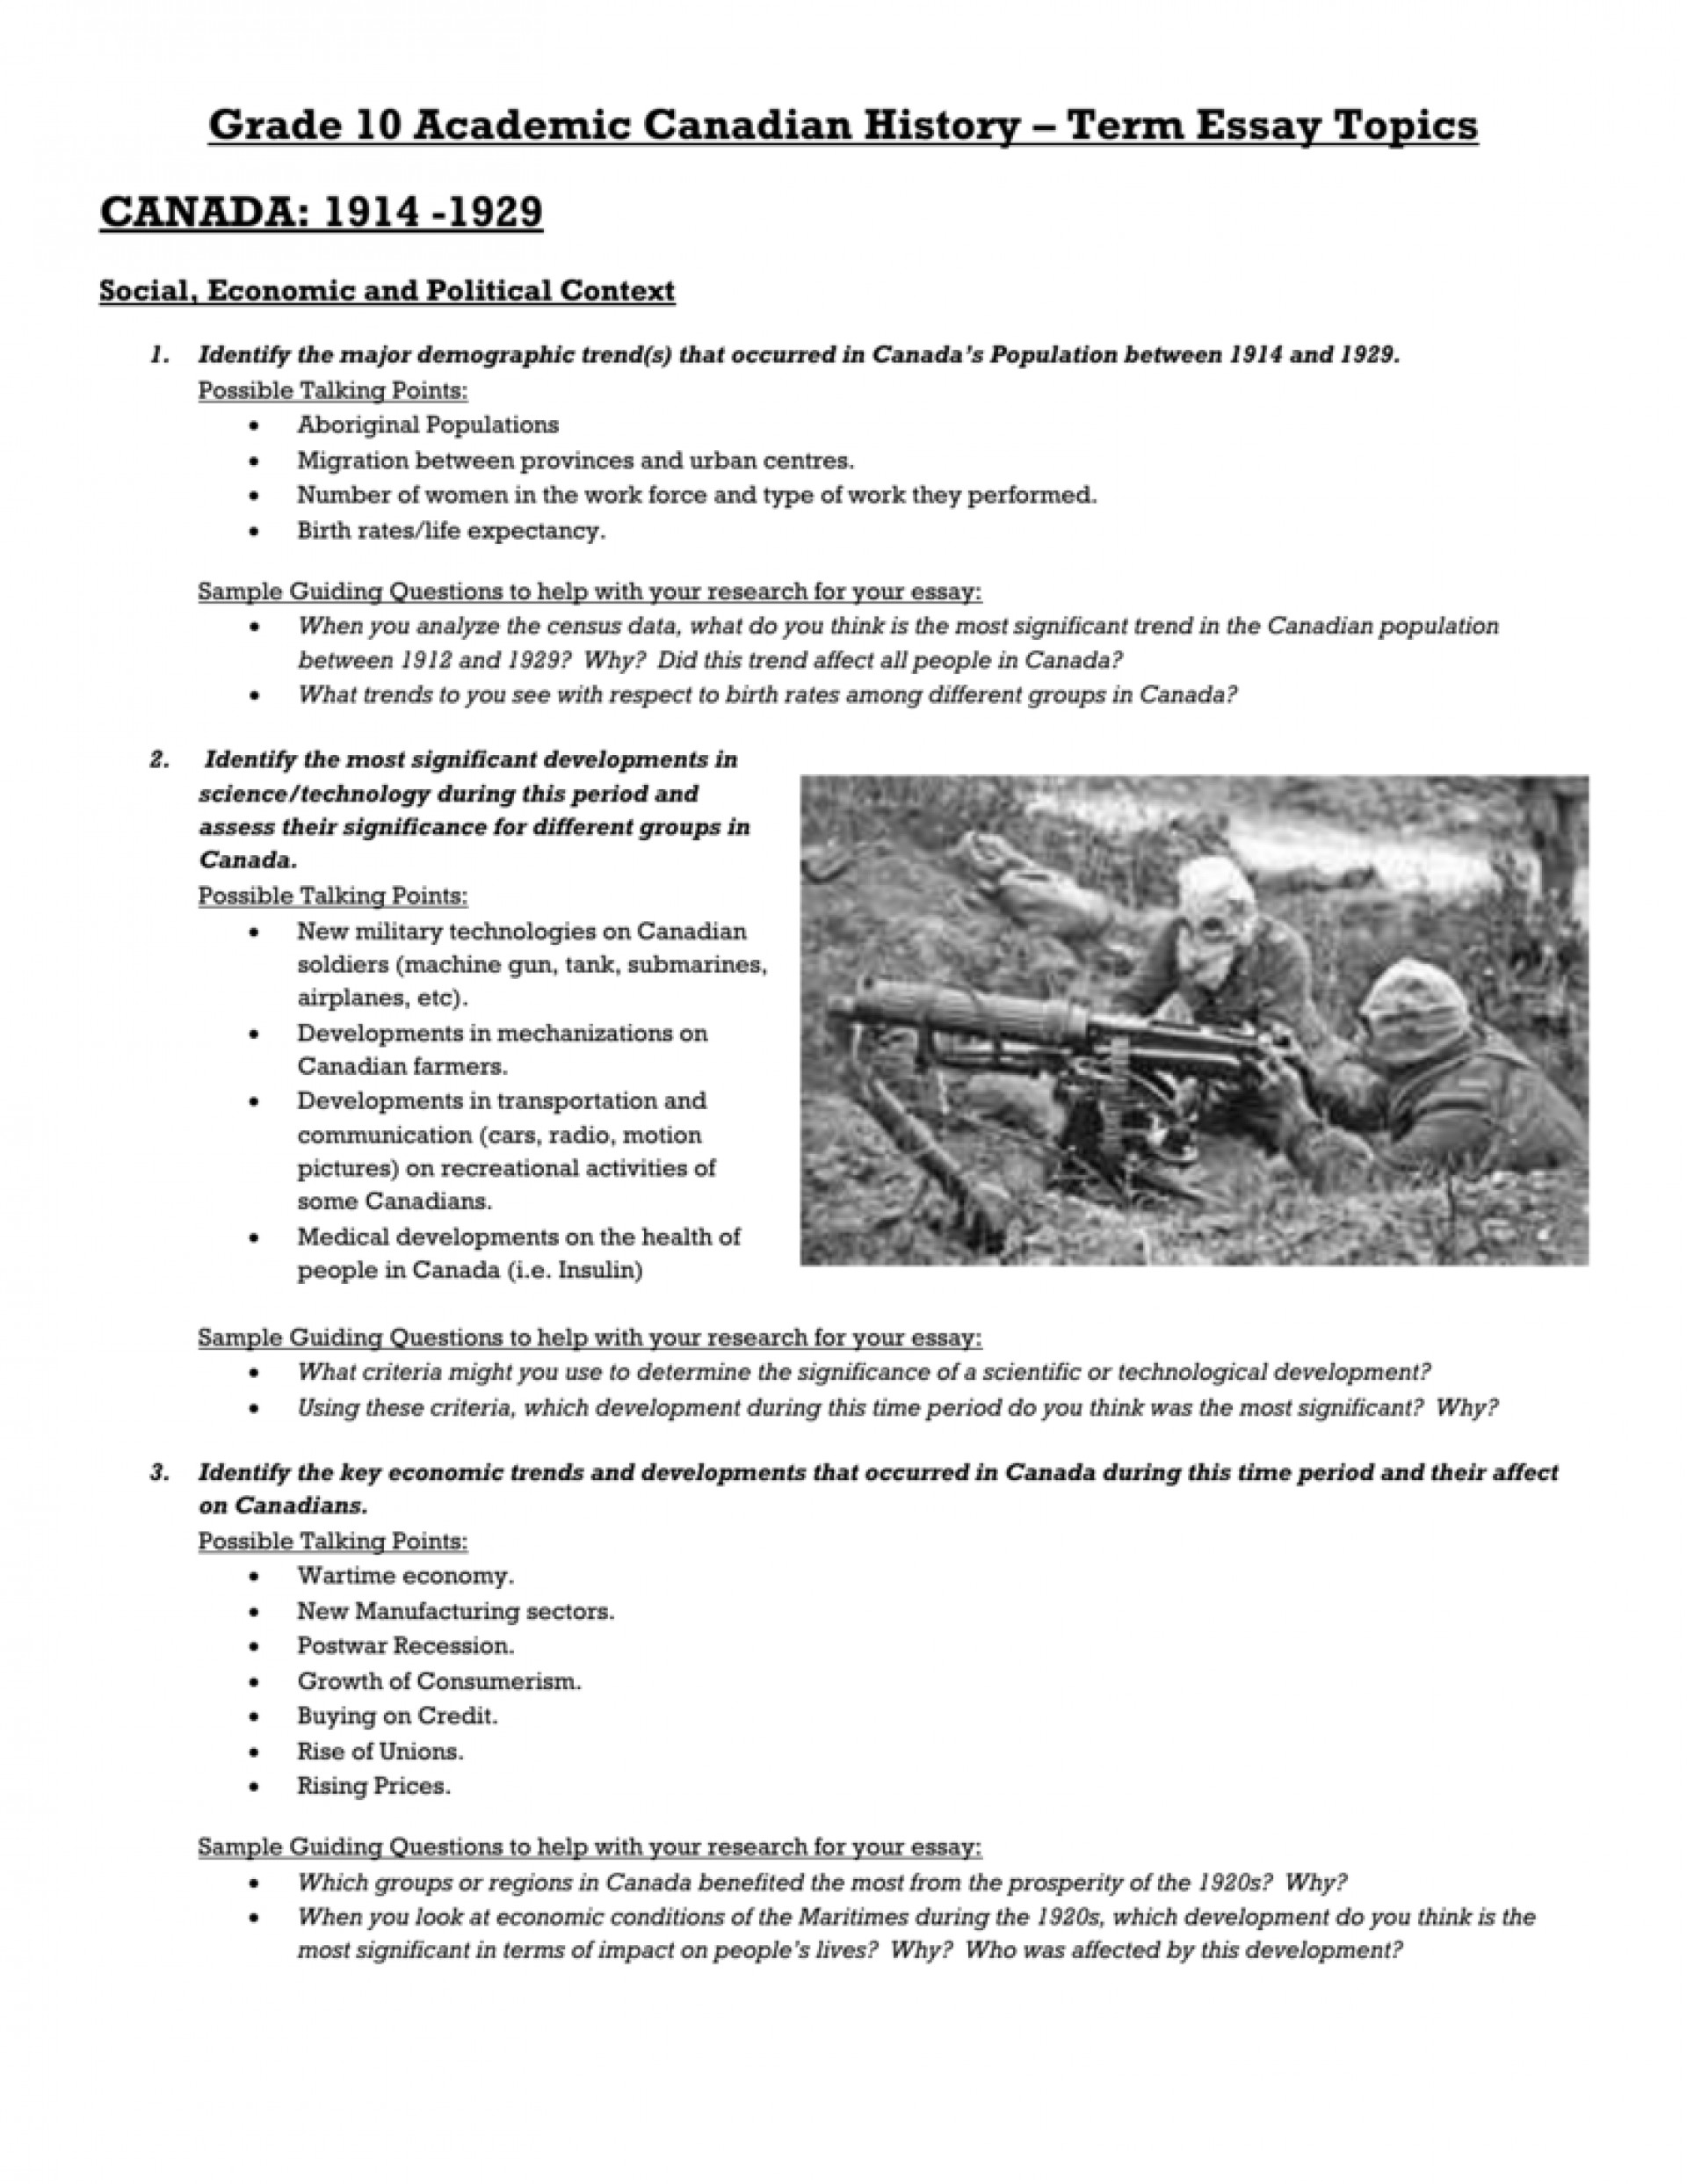 018 History Research Paper Topics India 007102717 1 Military Related Argumentative20ssay Topics20thics Stunning 1920